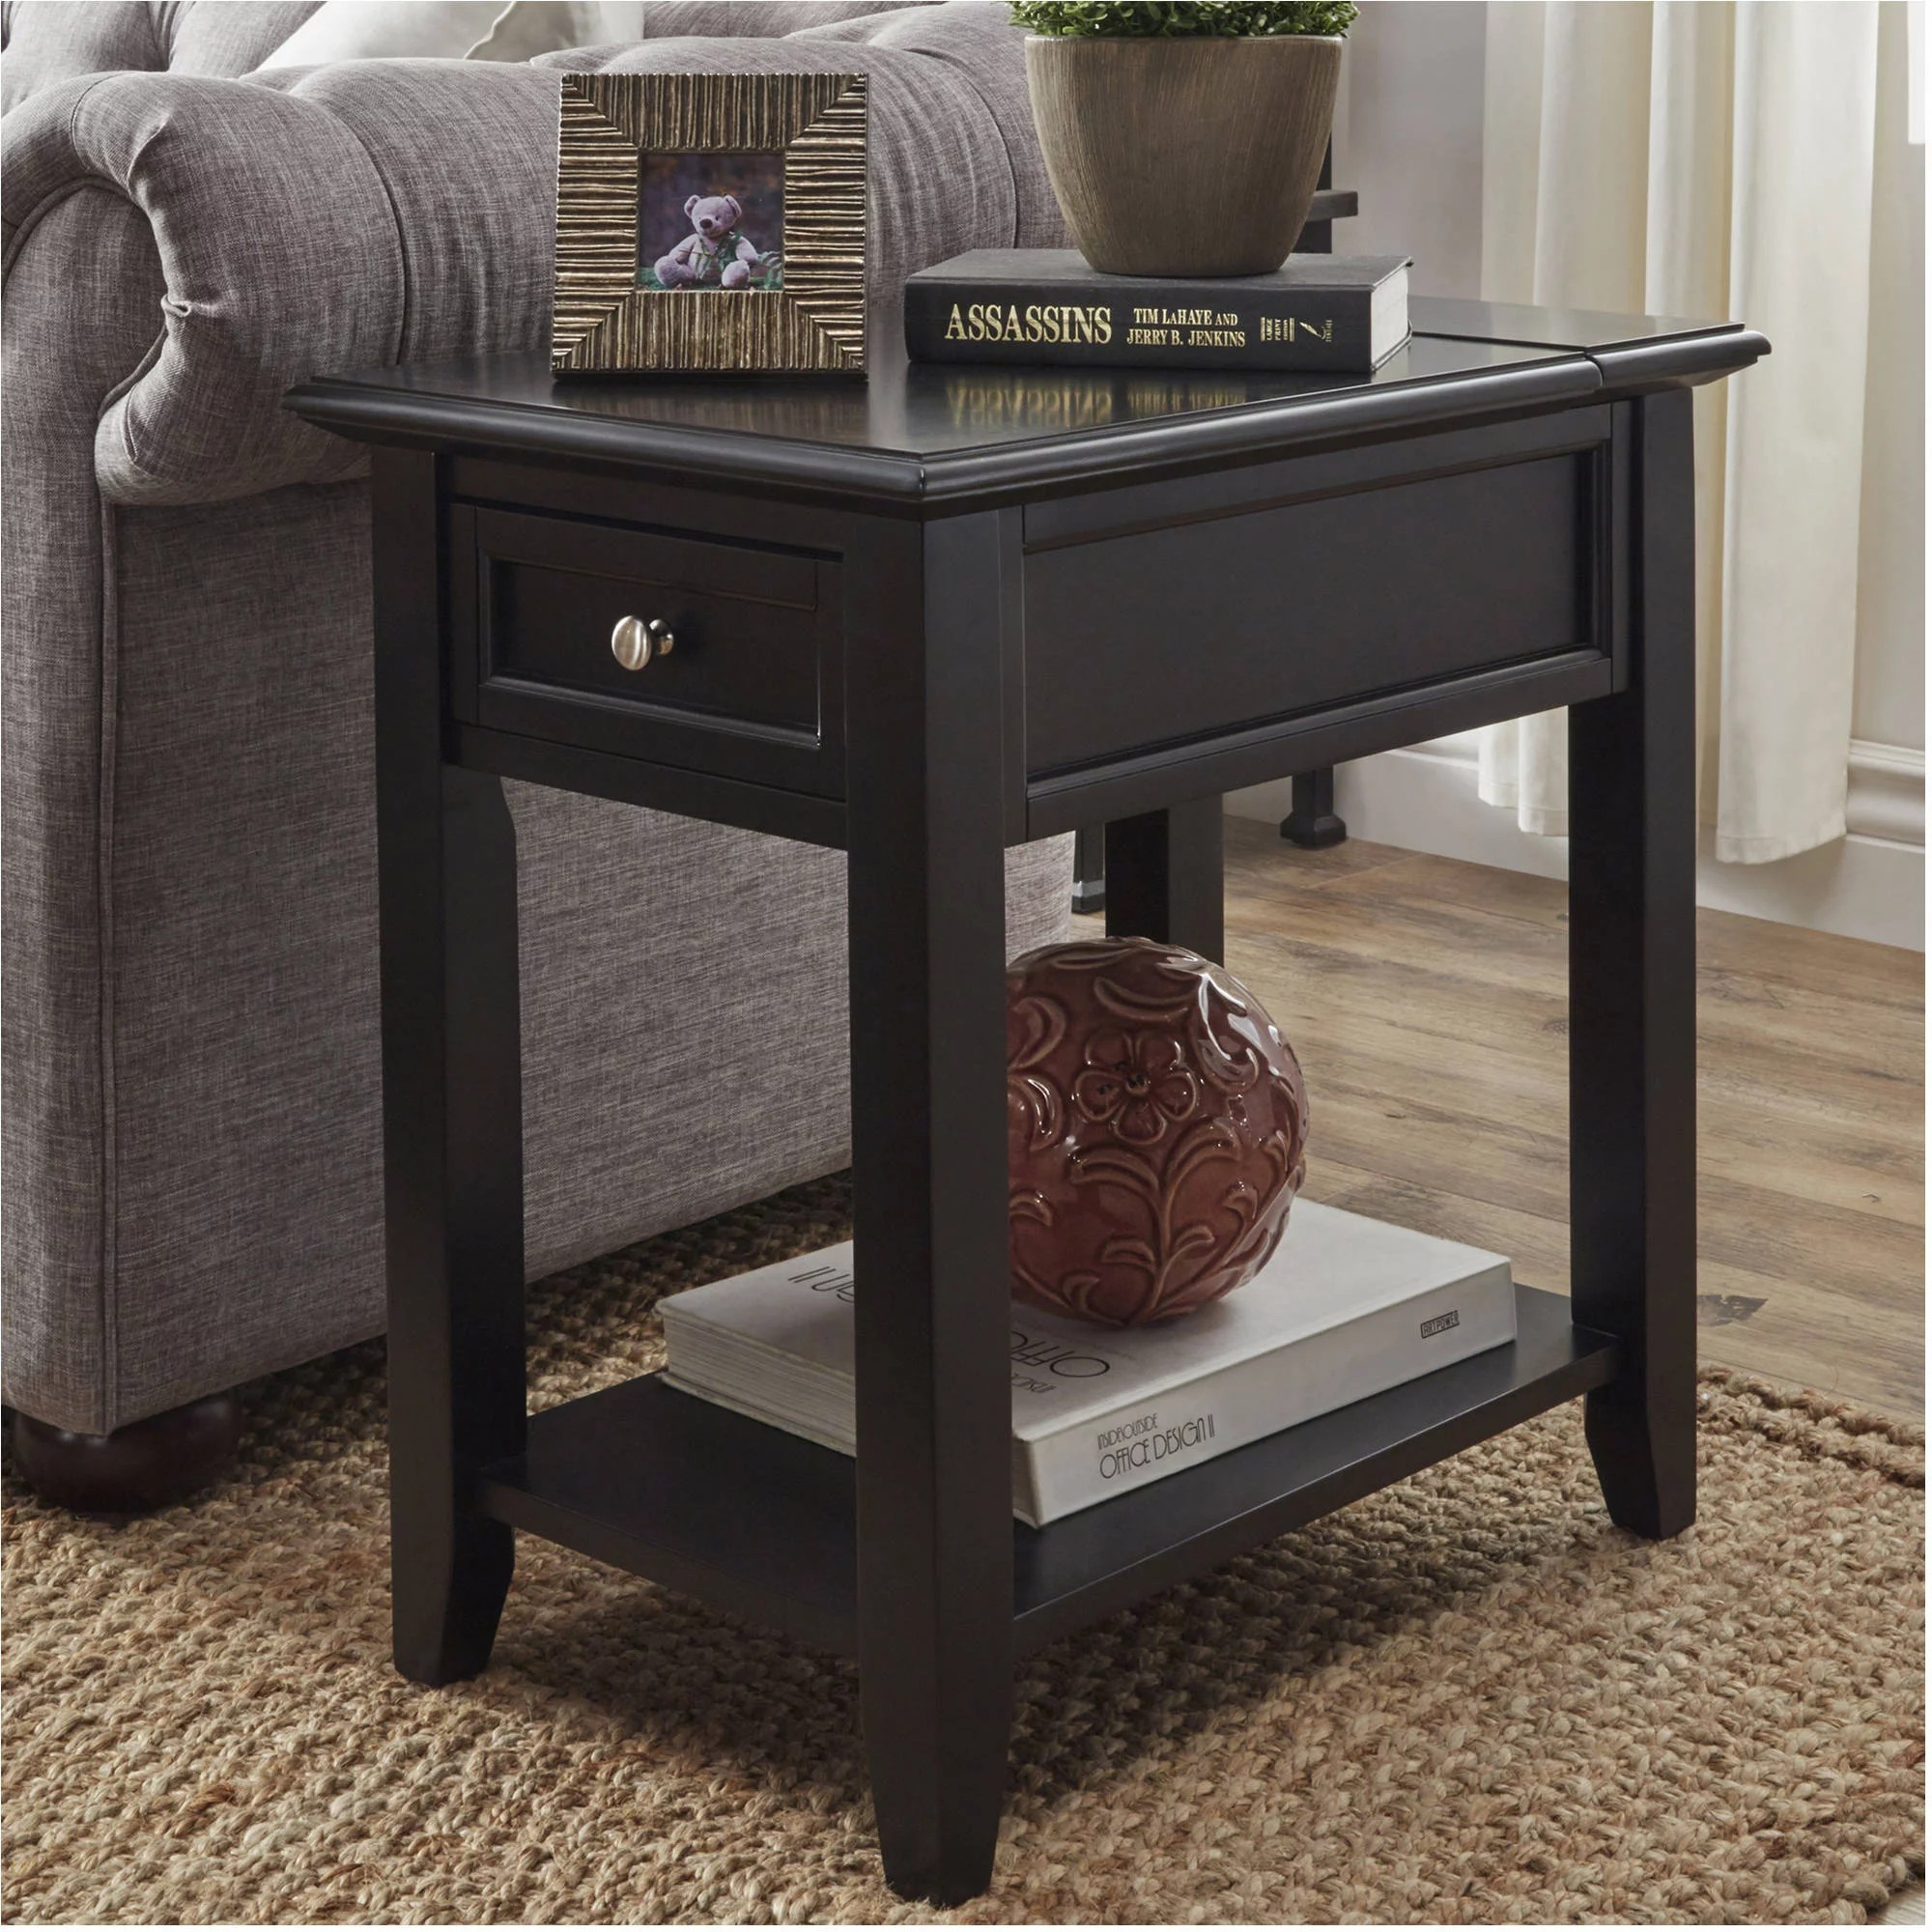 Chelsea Lane Wood 24 High End Table With One Drawer And Lift Top 3 Plug Power Outlet Vulcan Black Walmart Com Walmart Com